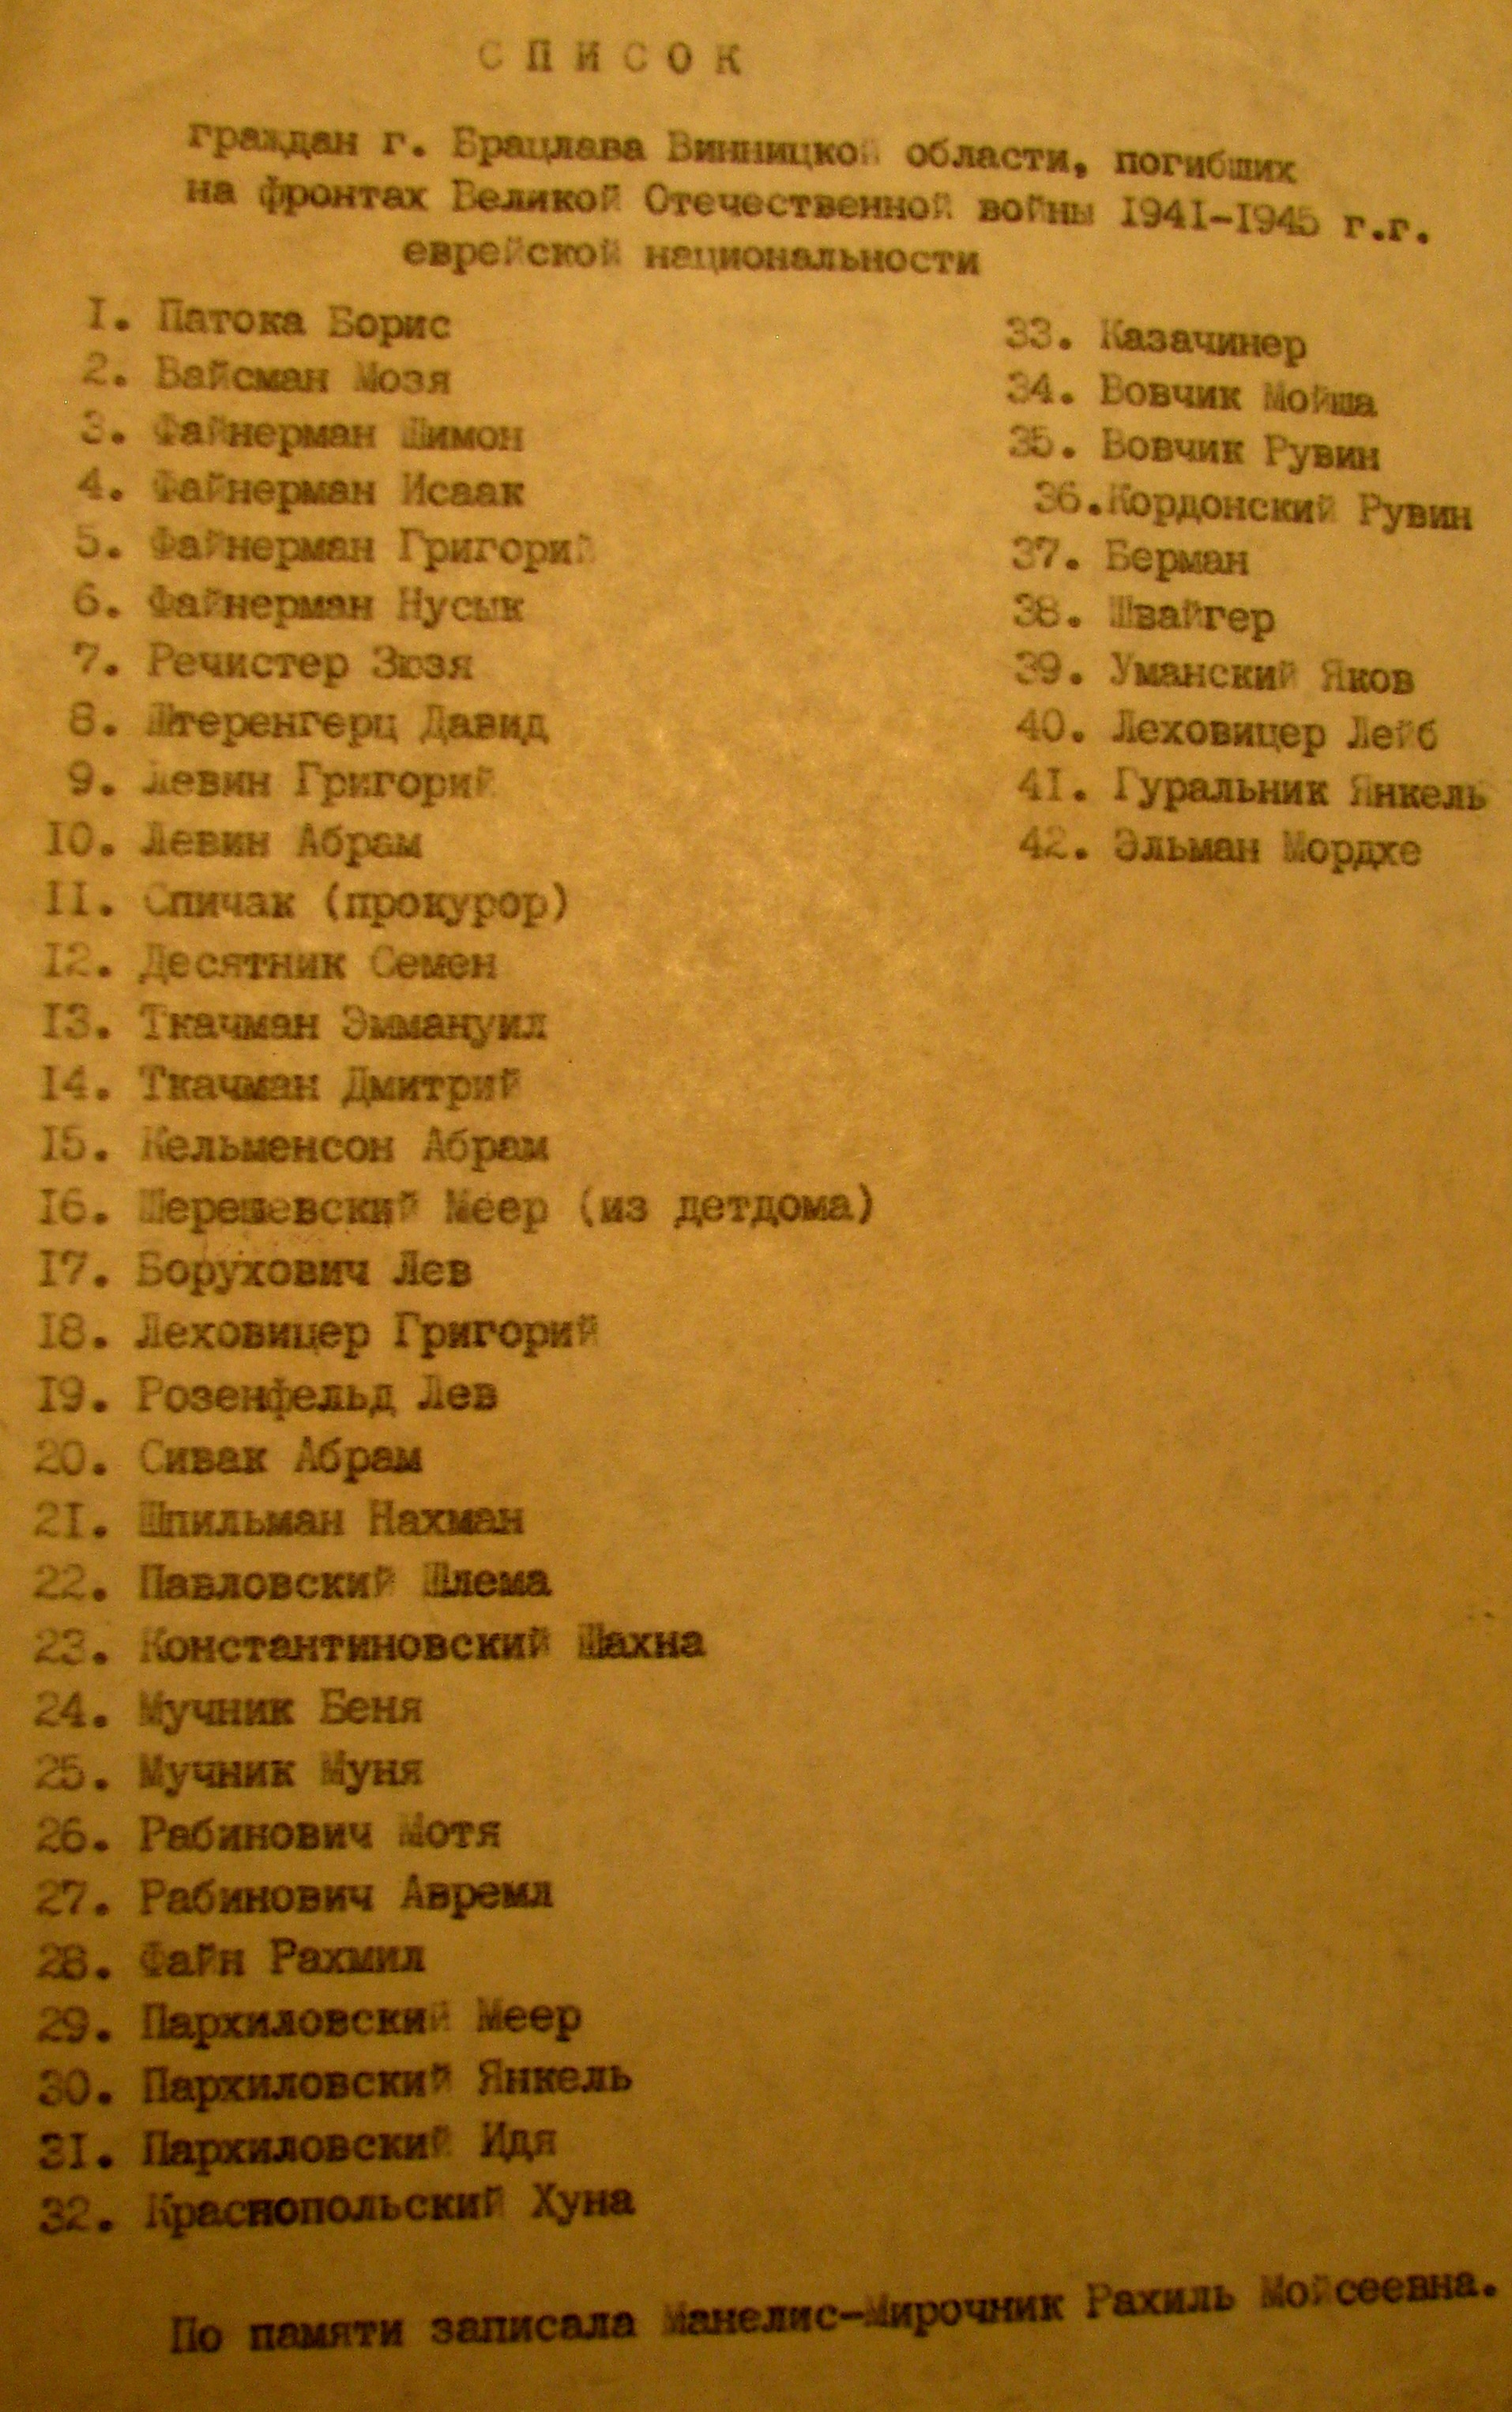 List of Bratslav Jews which were perished in Red Army